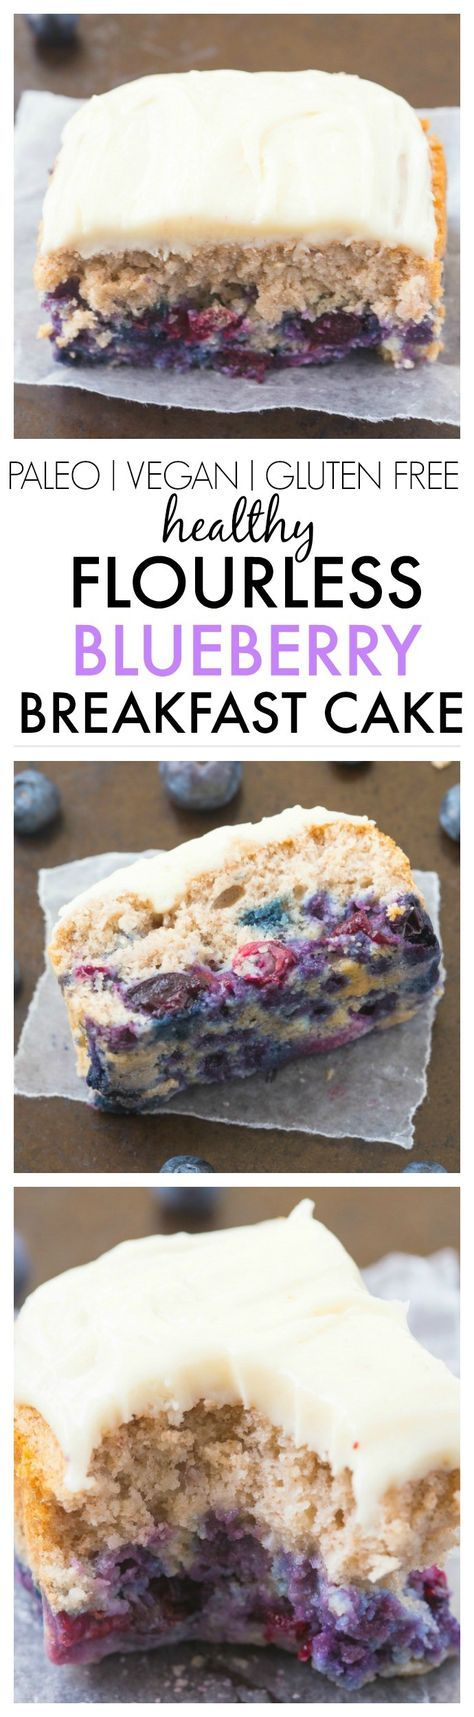 Healthy Flourless Blueberry Breakfast Cake - Light and fluffy on the inside, tender on the outside, have a guilt free dessert for breakfast. NO butter, oil, flour or sugar!